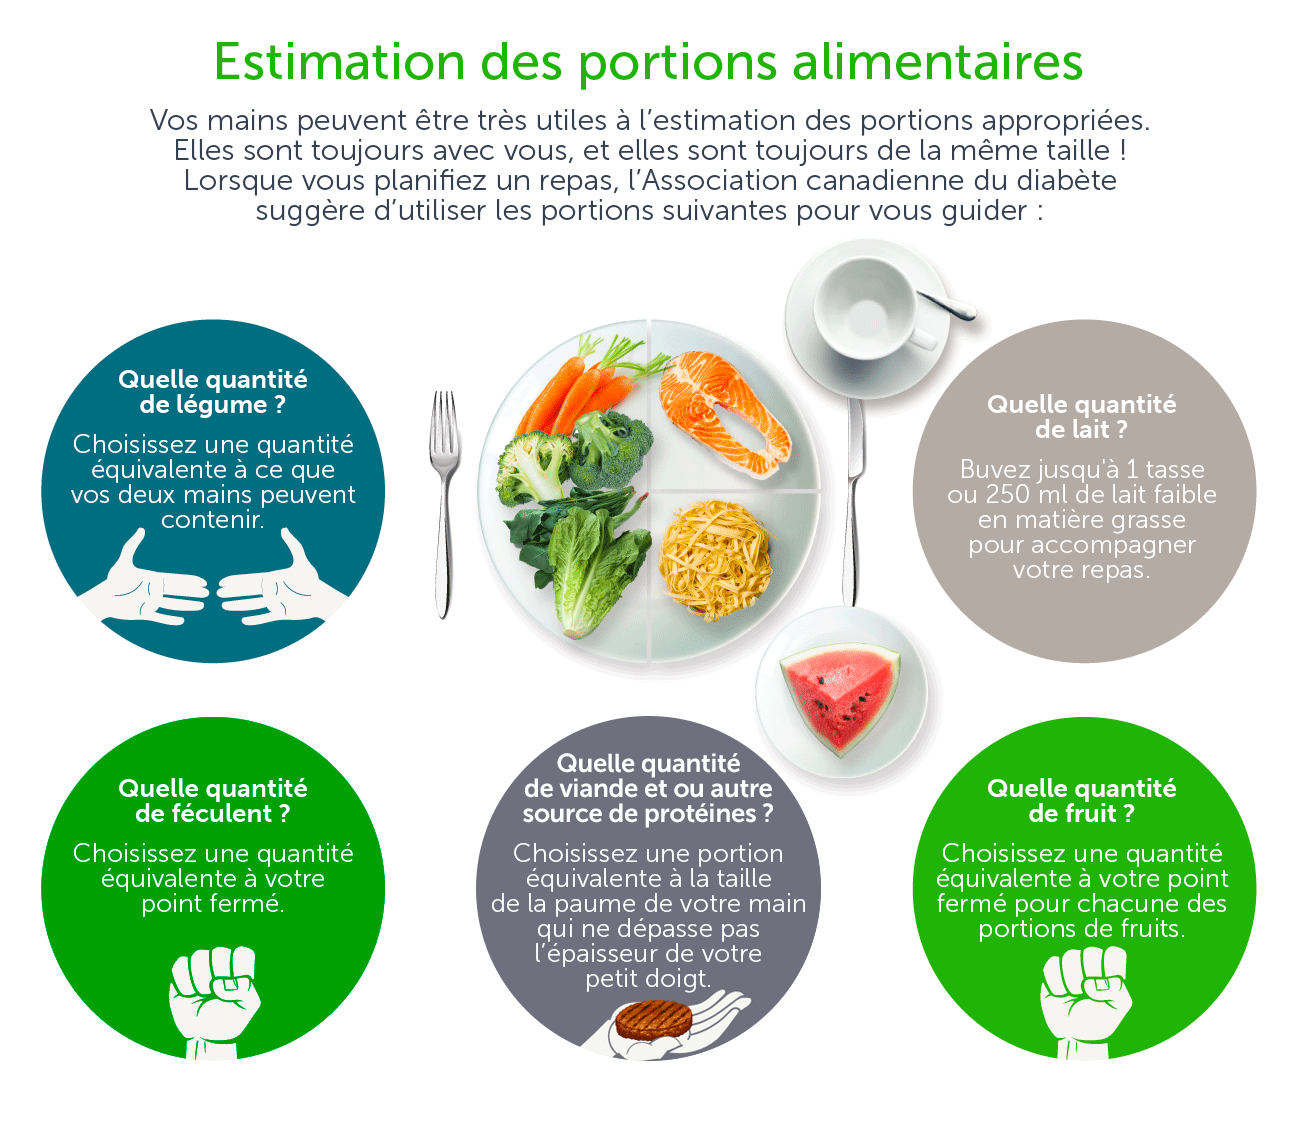 Estimation des portions alimentaires